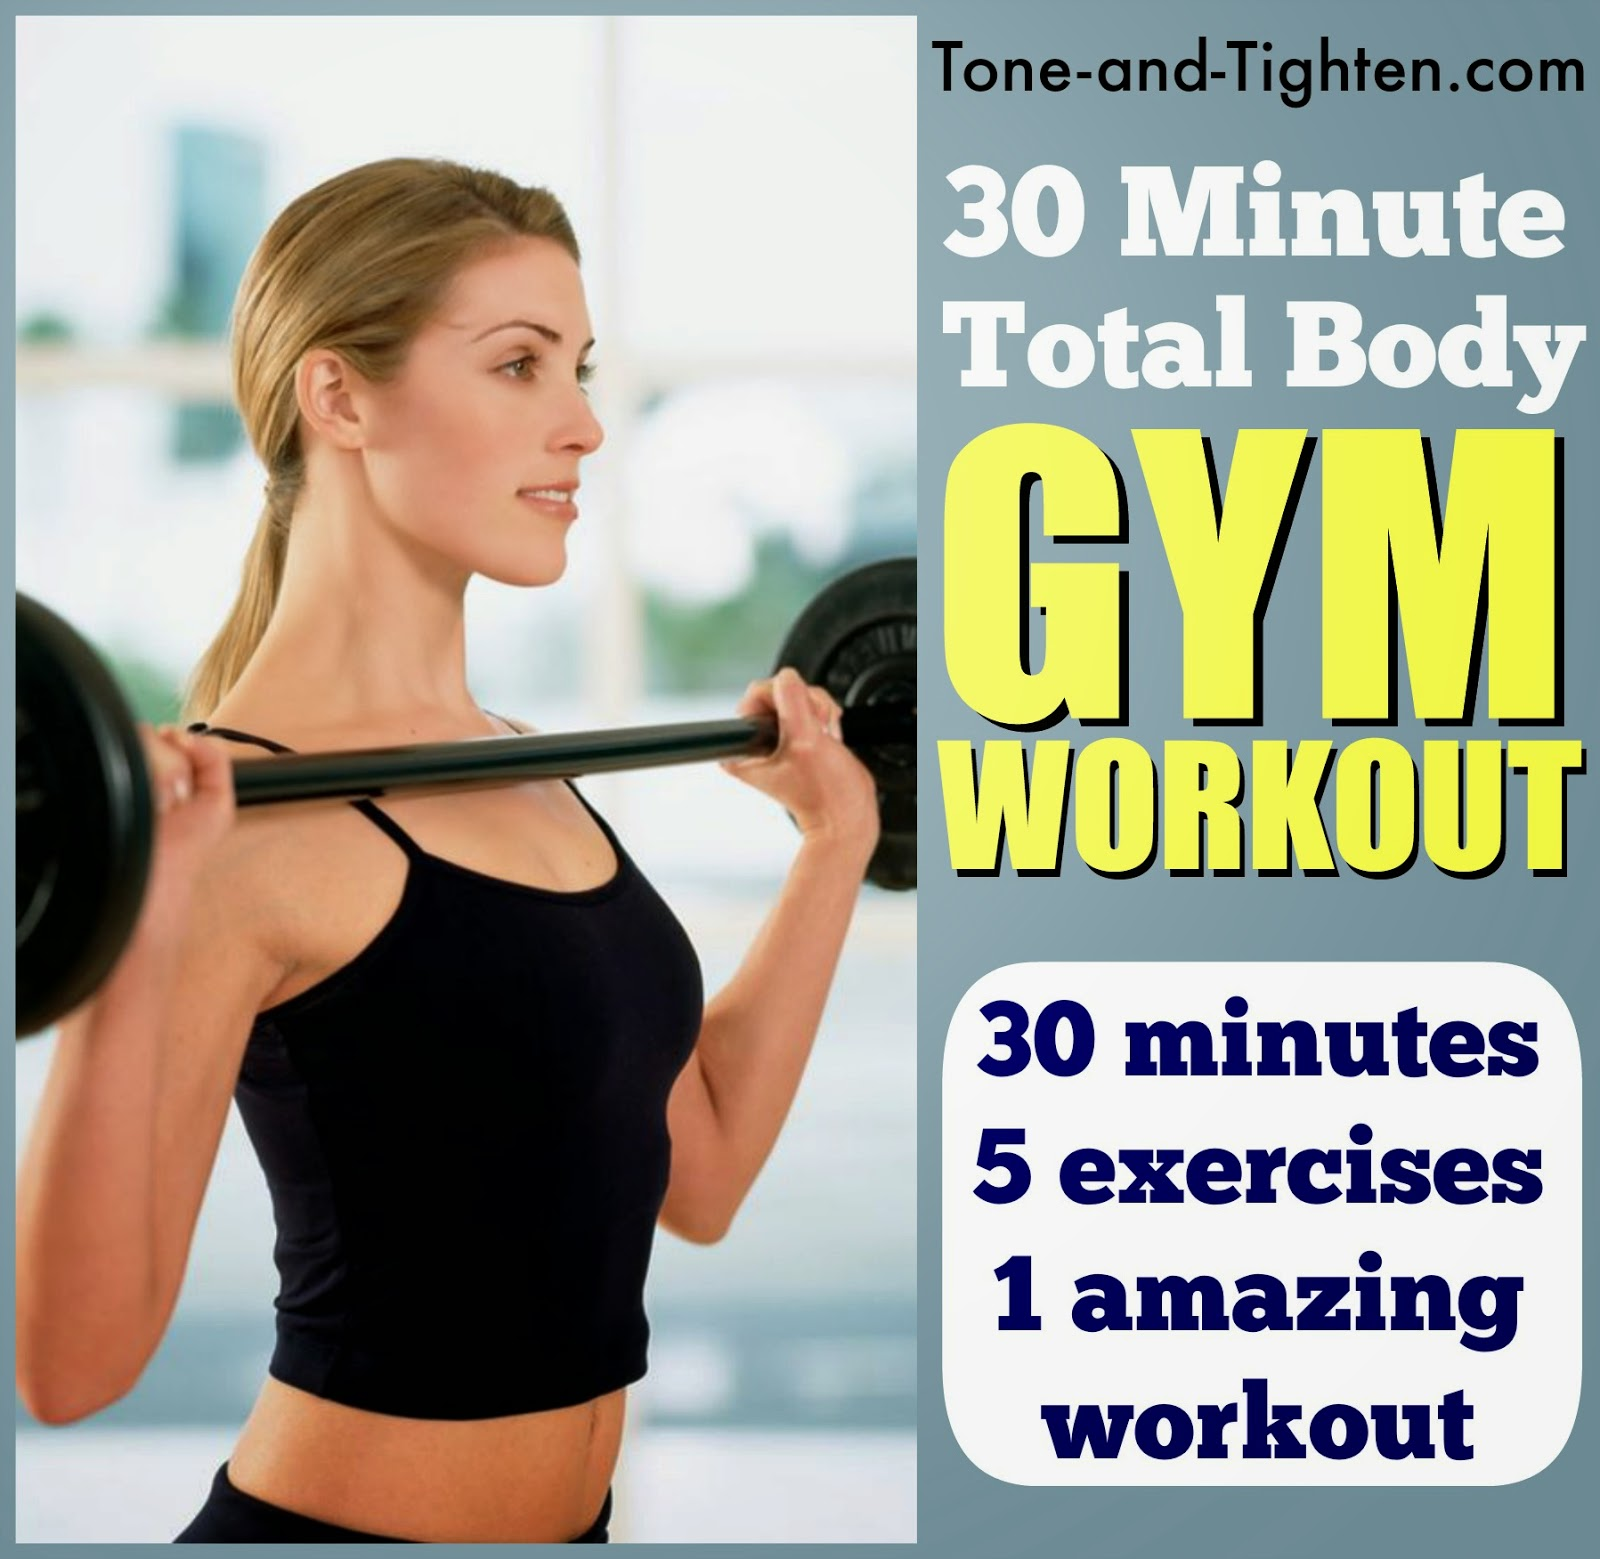 Best Quick Total Body Gym Workout Exercise 30